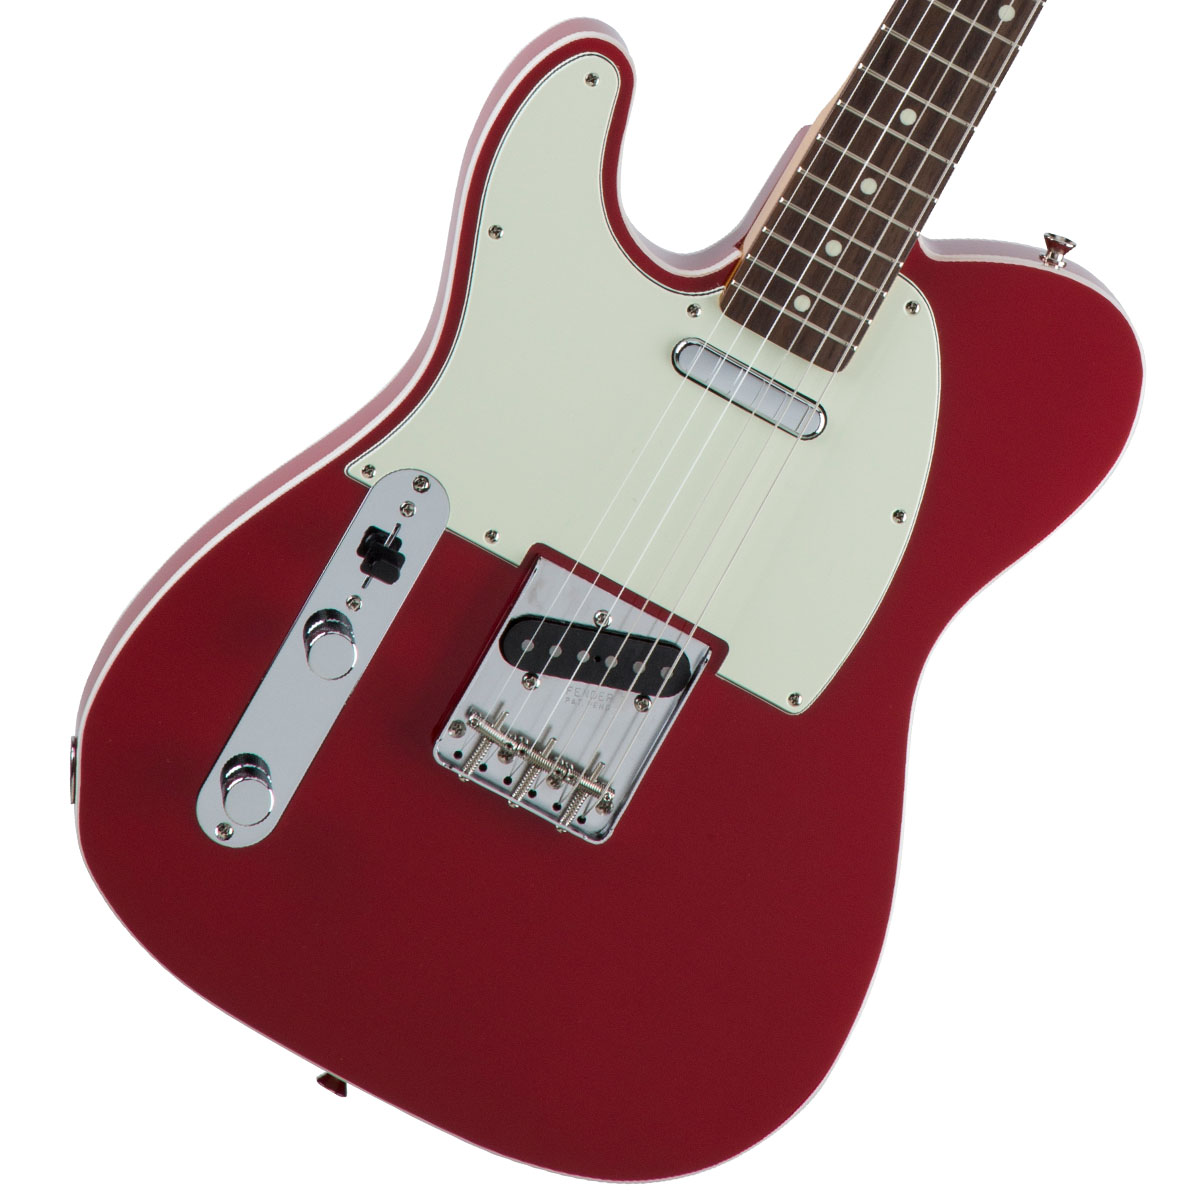 Fender / Made in Japan Traditional 60s Telecaster Custom Left-Hand Torino Red 【お取り寄せ商品】《カスタムショップのお手入れ用品を進呈/+671038200》